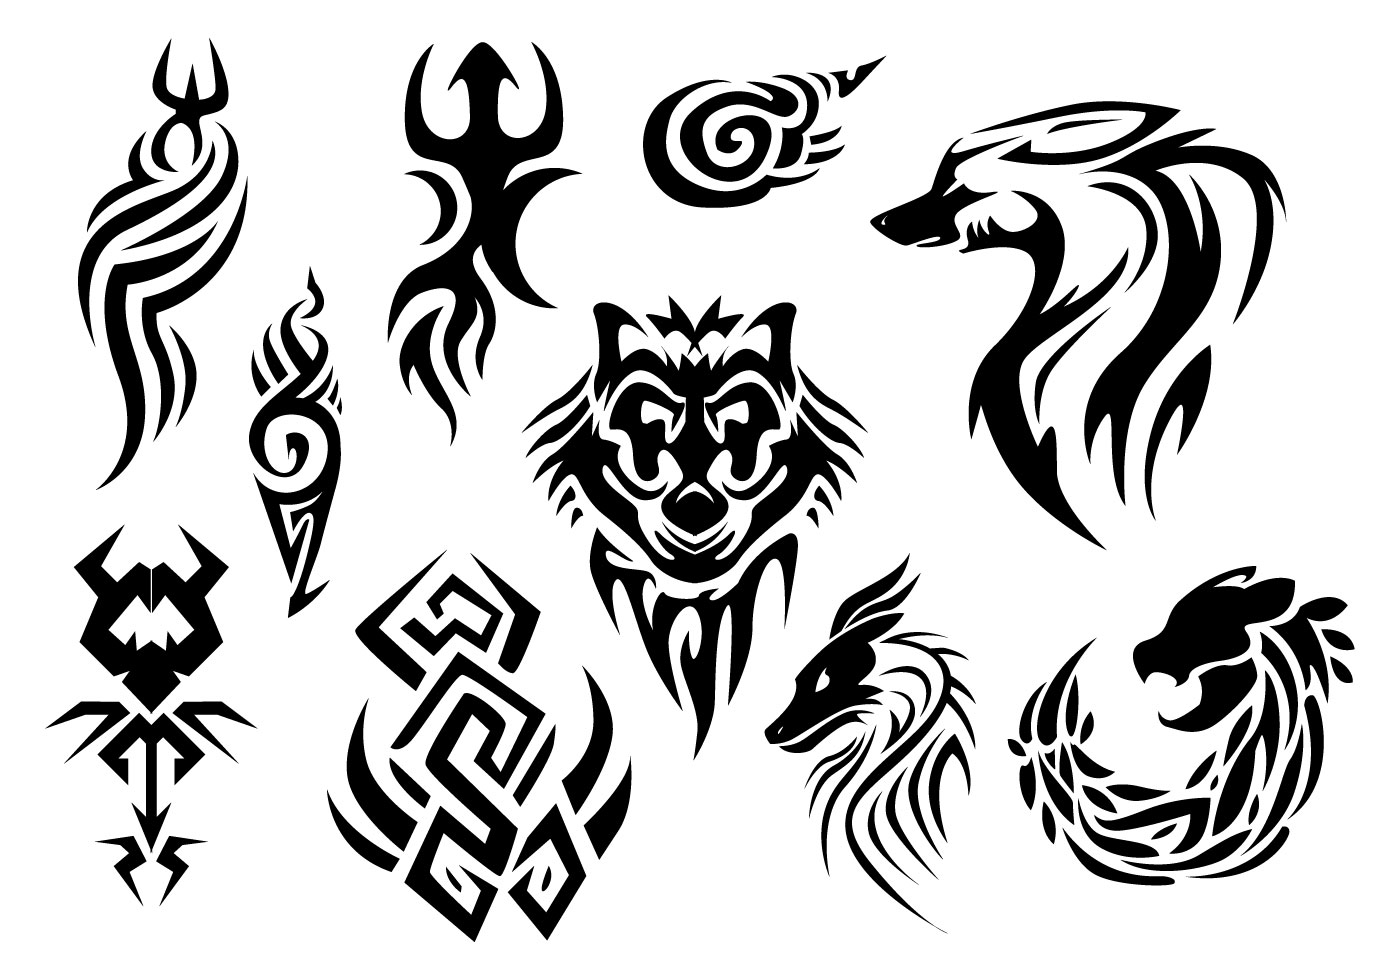 pinstripes tattoo vector download free vector art stock graphics images. Black Bedroom Furniture Sets. Home Design Ideas